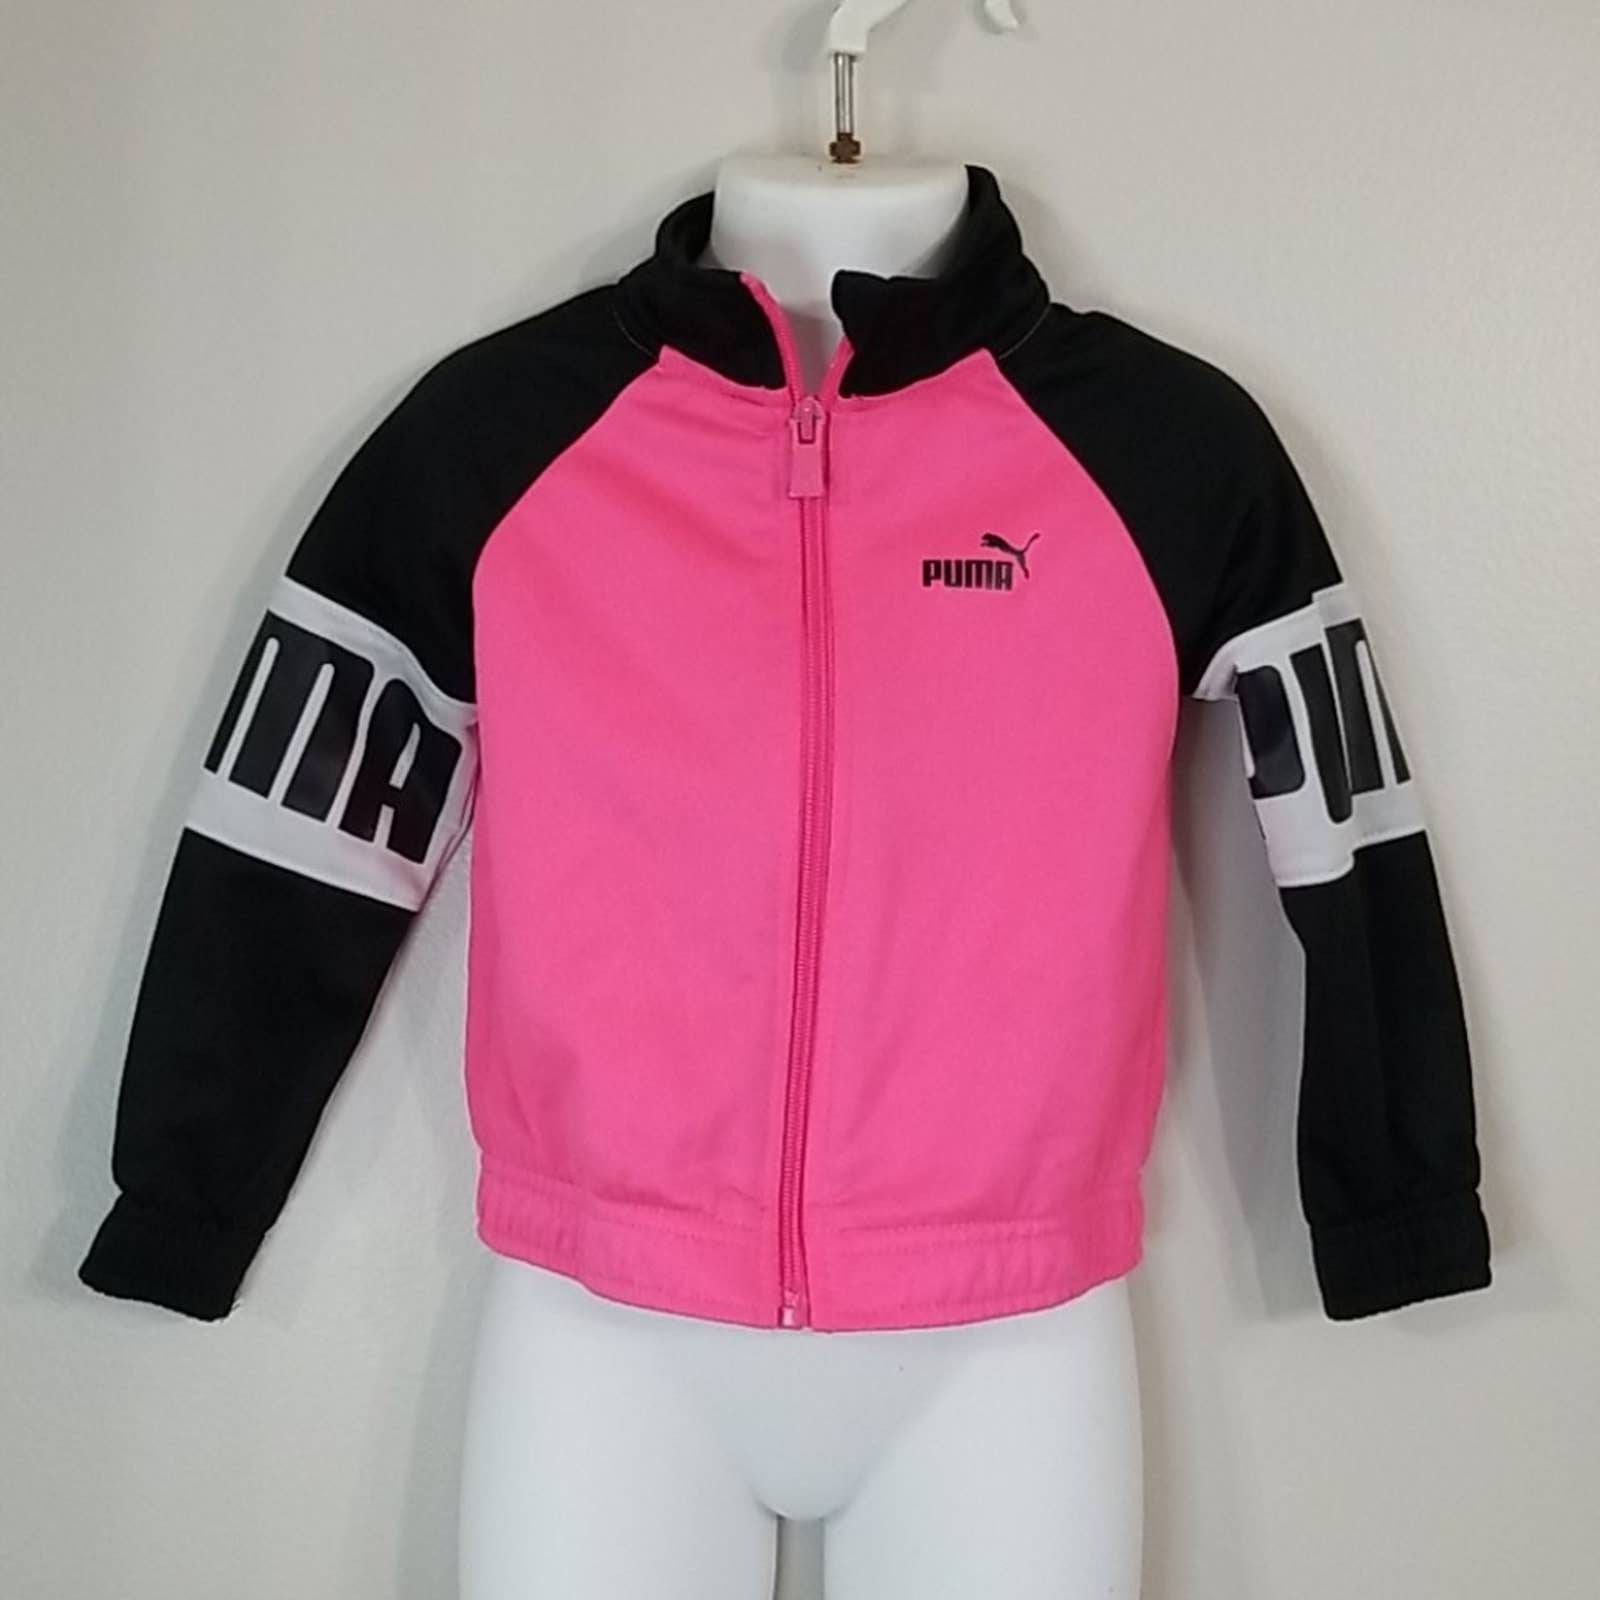 Puma girl's jacket sz 2T